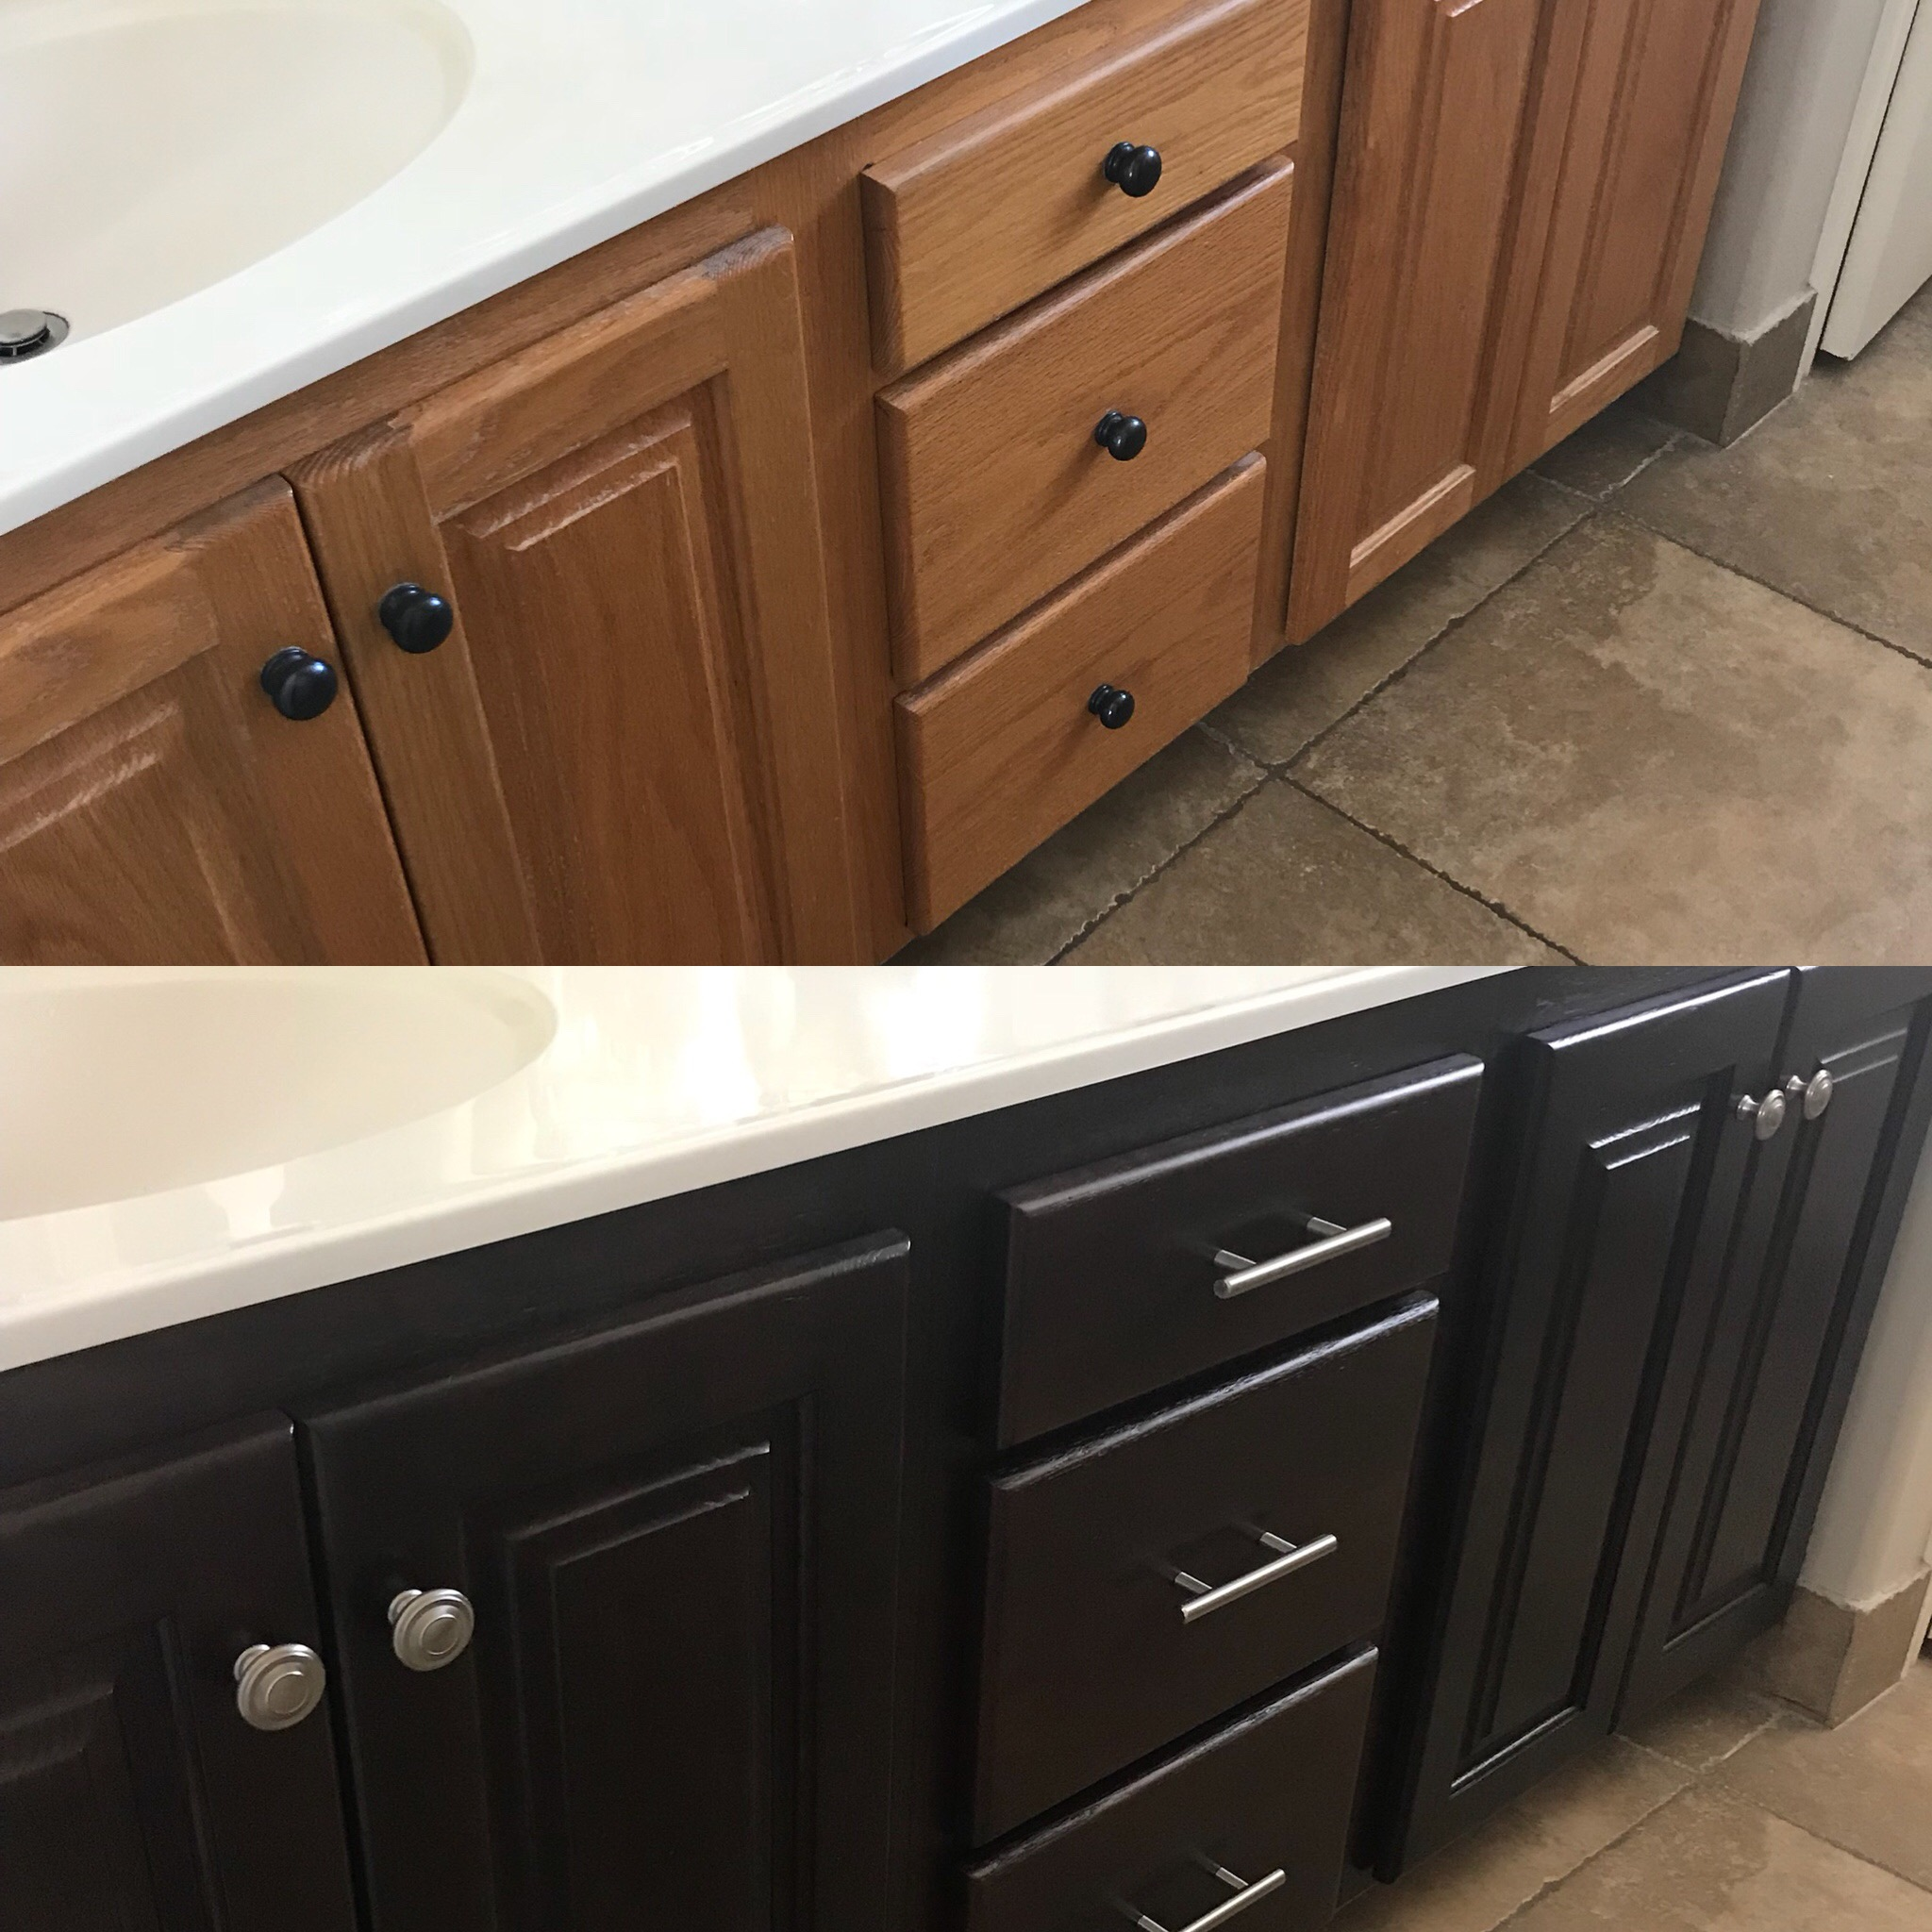 Swell Before And After Telisas Furniture And Cabinet Refinishing Home Interior And Landscaping Ponolsignezvosmurscom